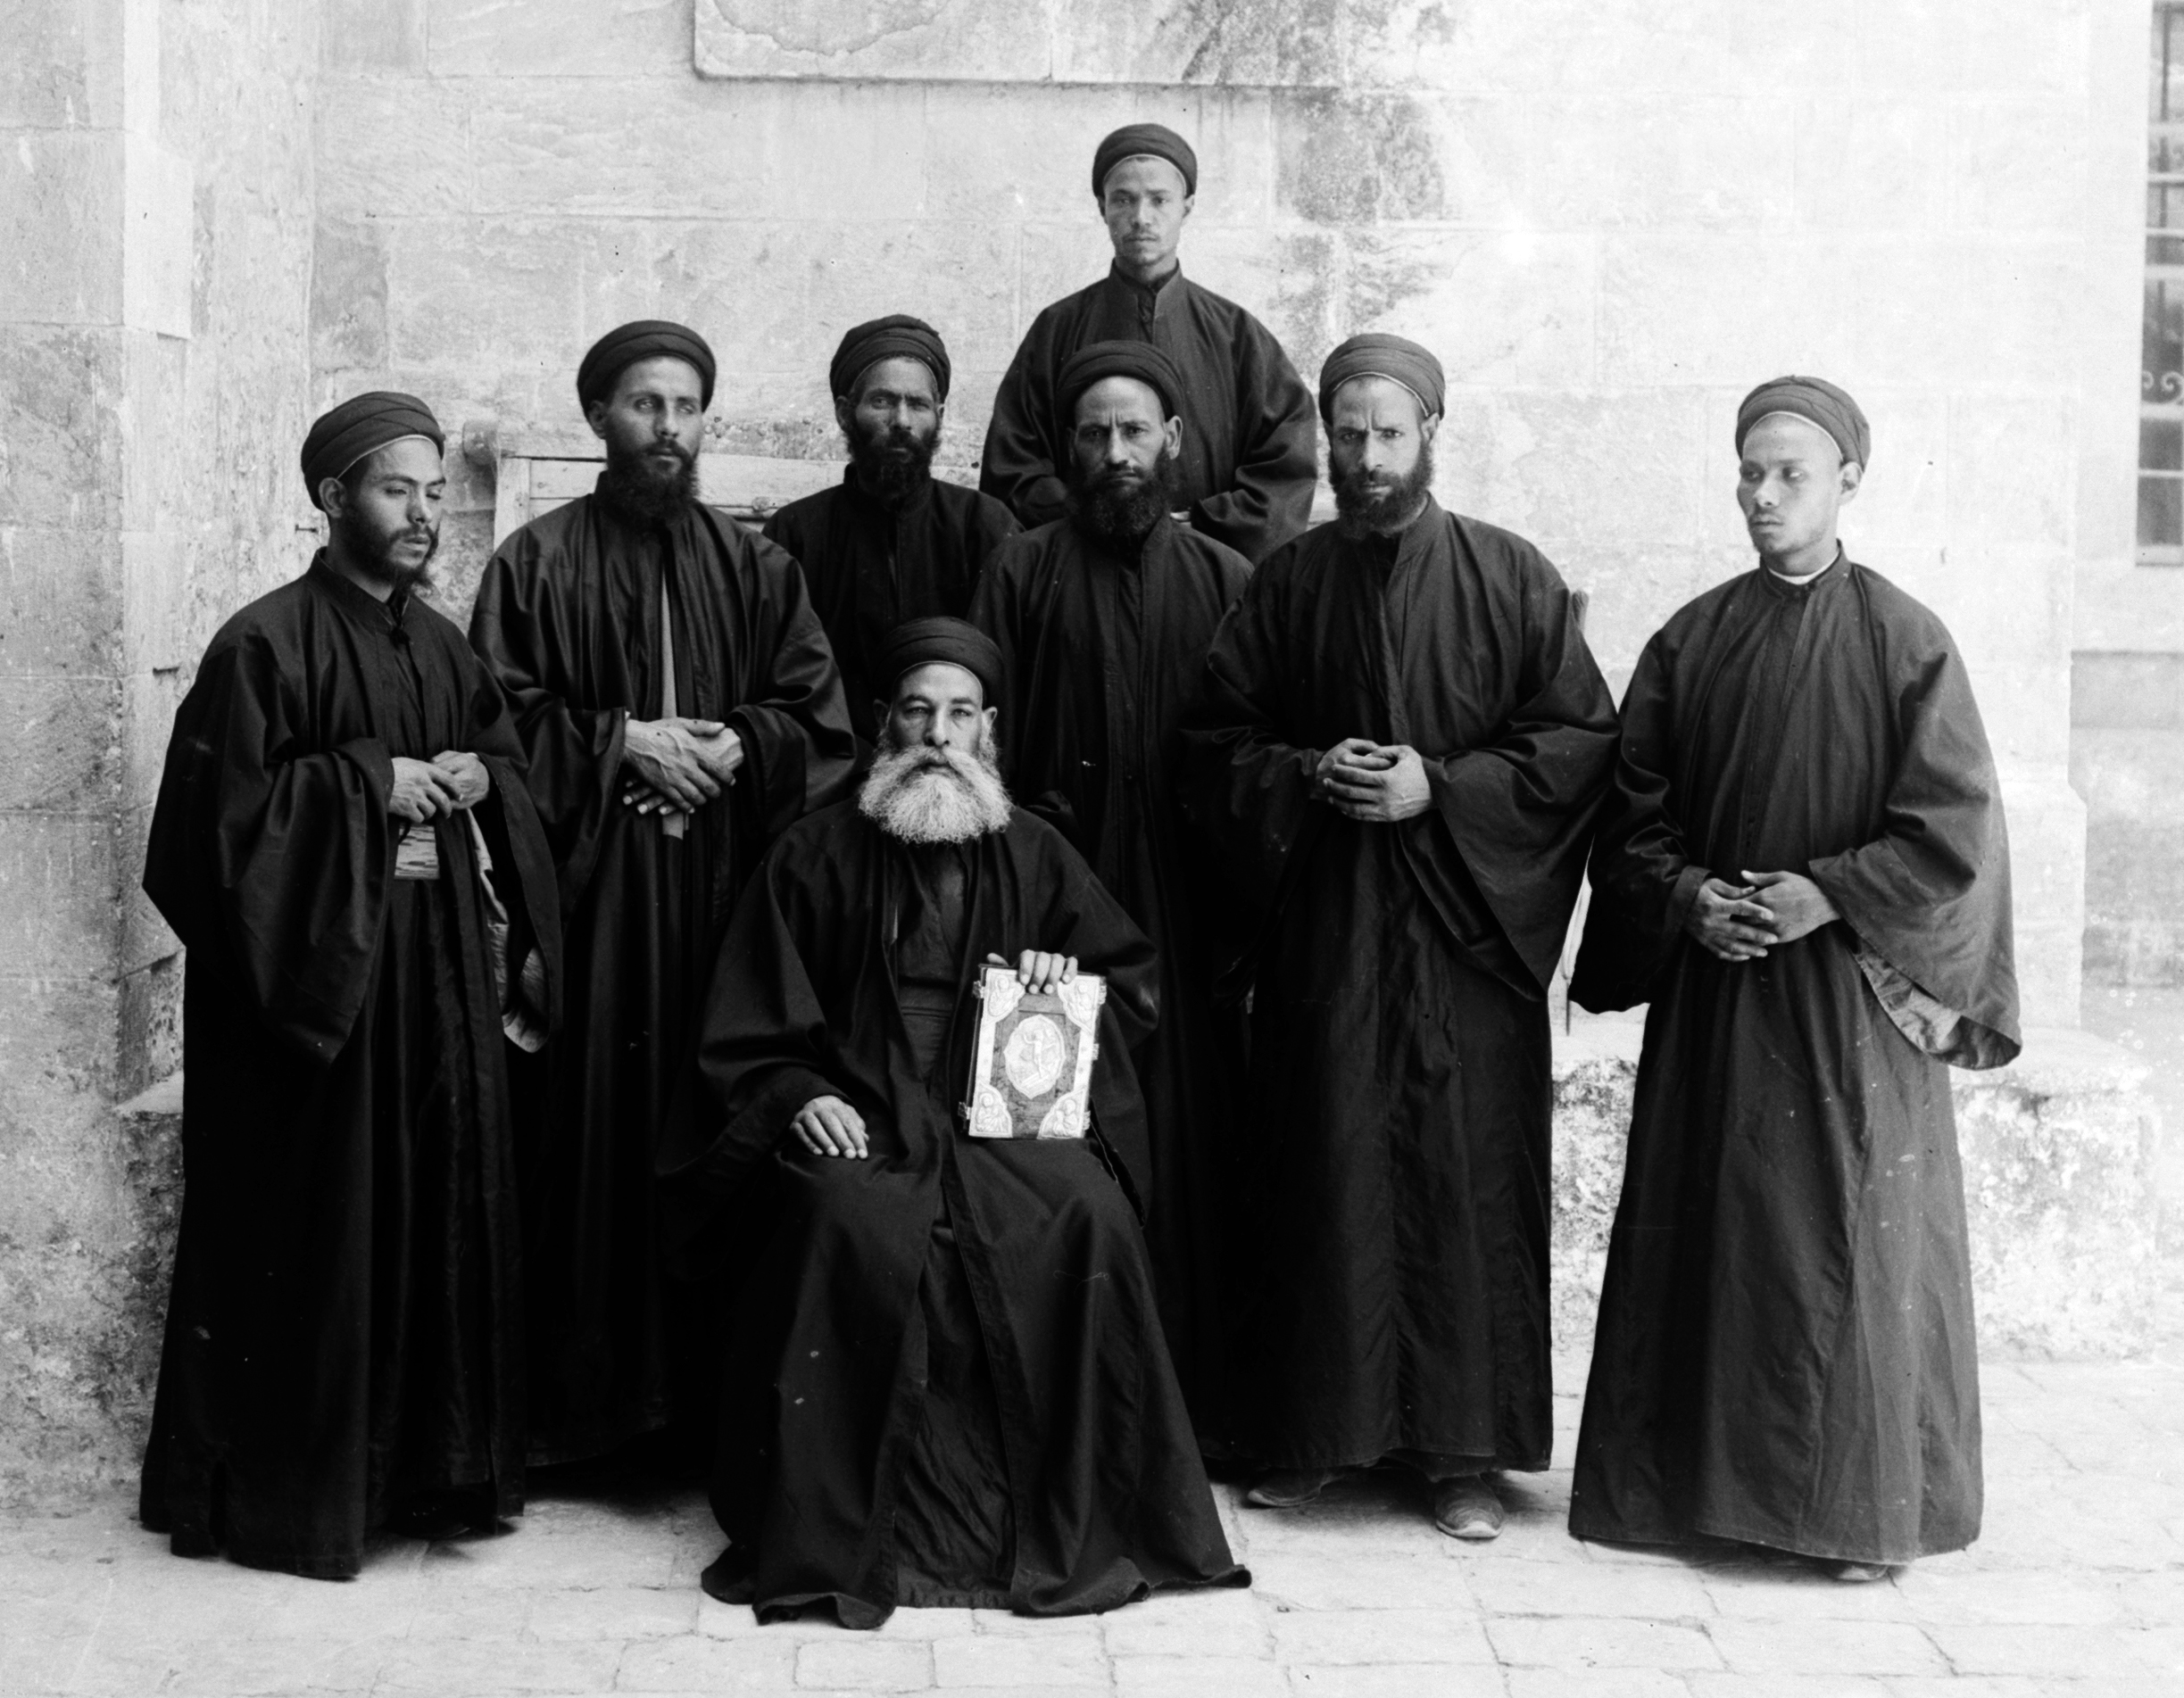 File:Coptic monks.jpg - Wikipedia, the free encyclopedia